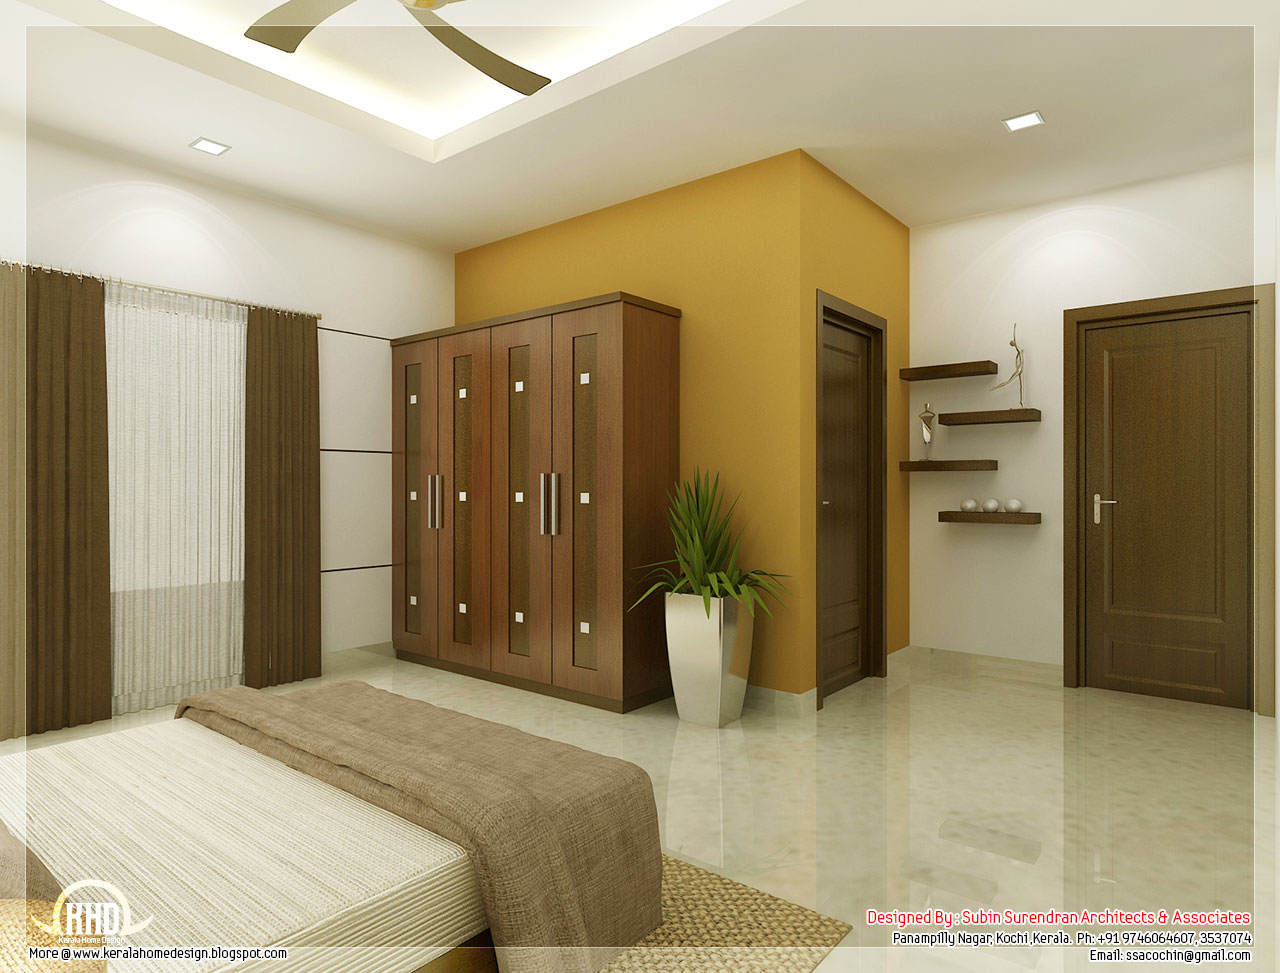 Beautiful bedroom interior designs kerala home design for Simple interior design ideas for indian homes